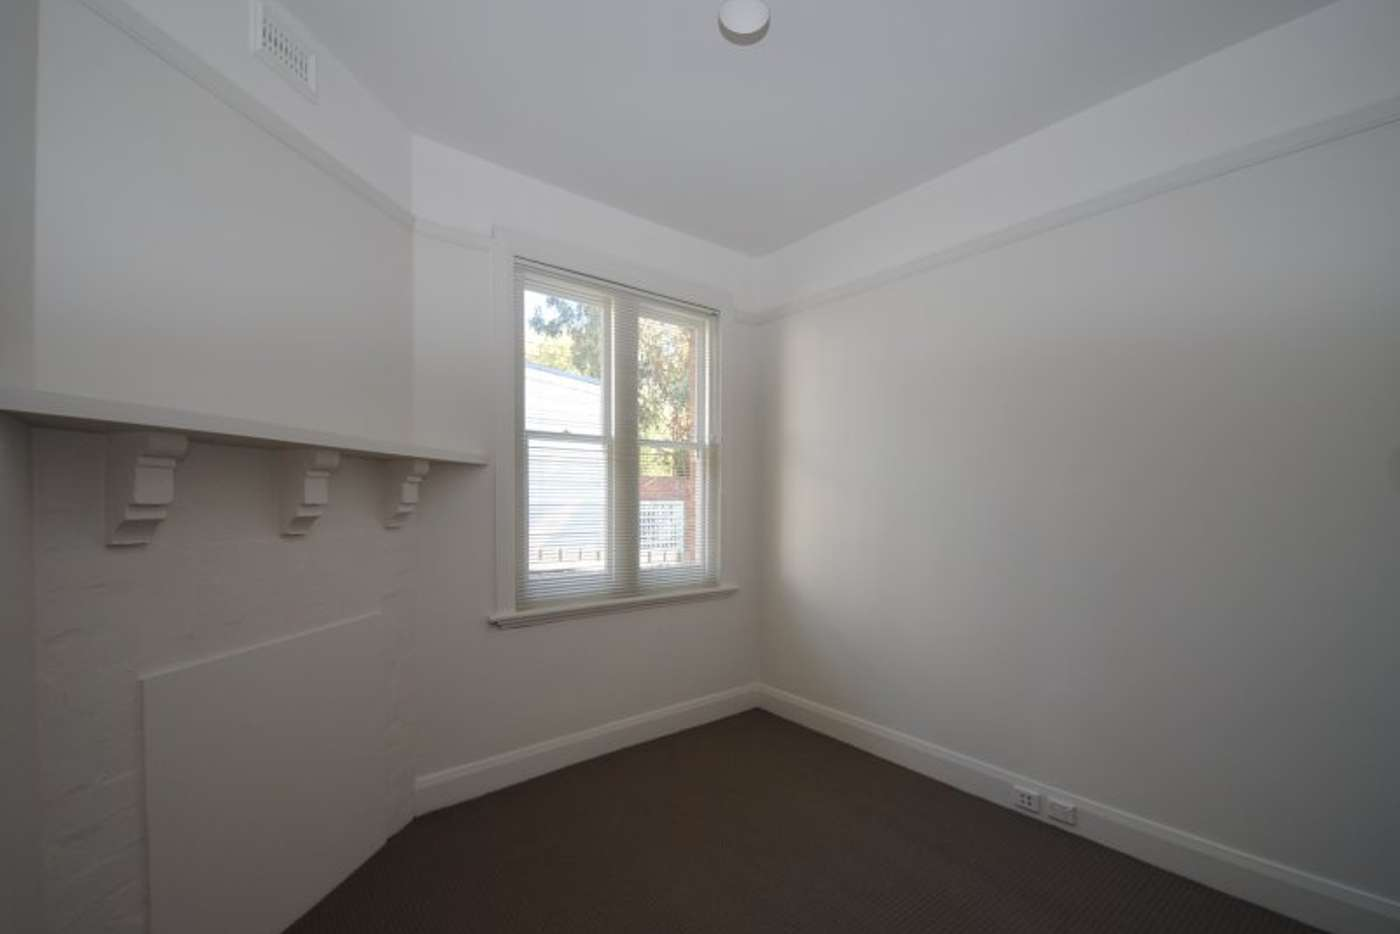 Seventh view of Homely house listing, 1 Lipscombe Avenue, Sandy Bay TAS 7005